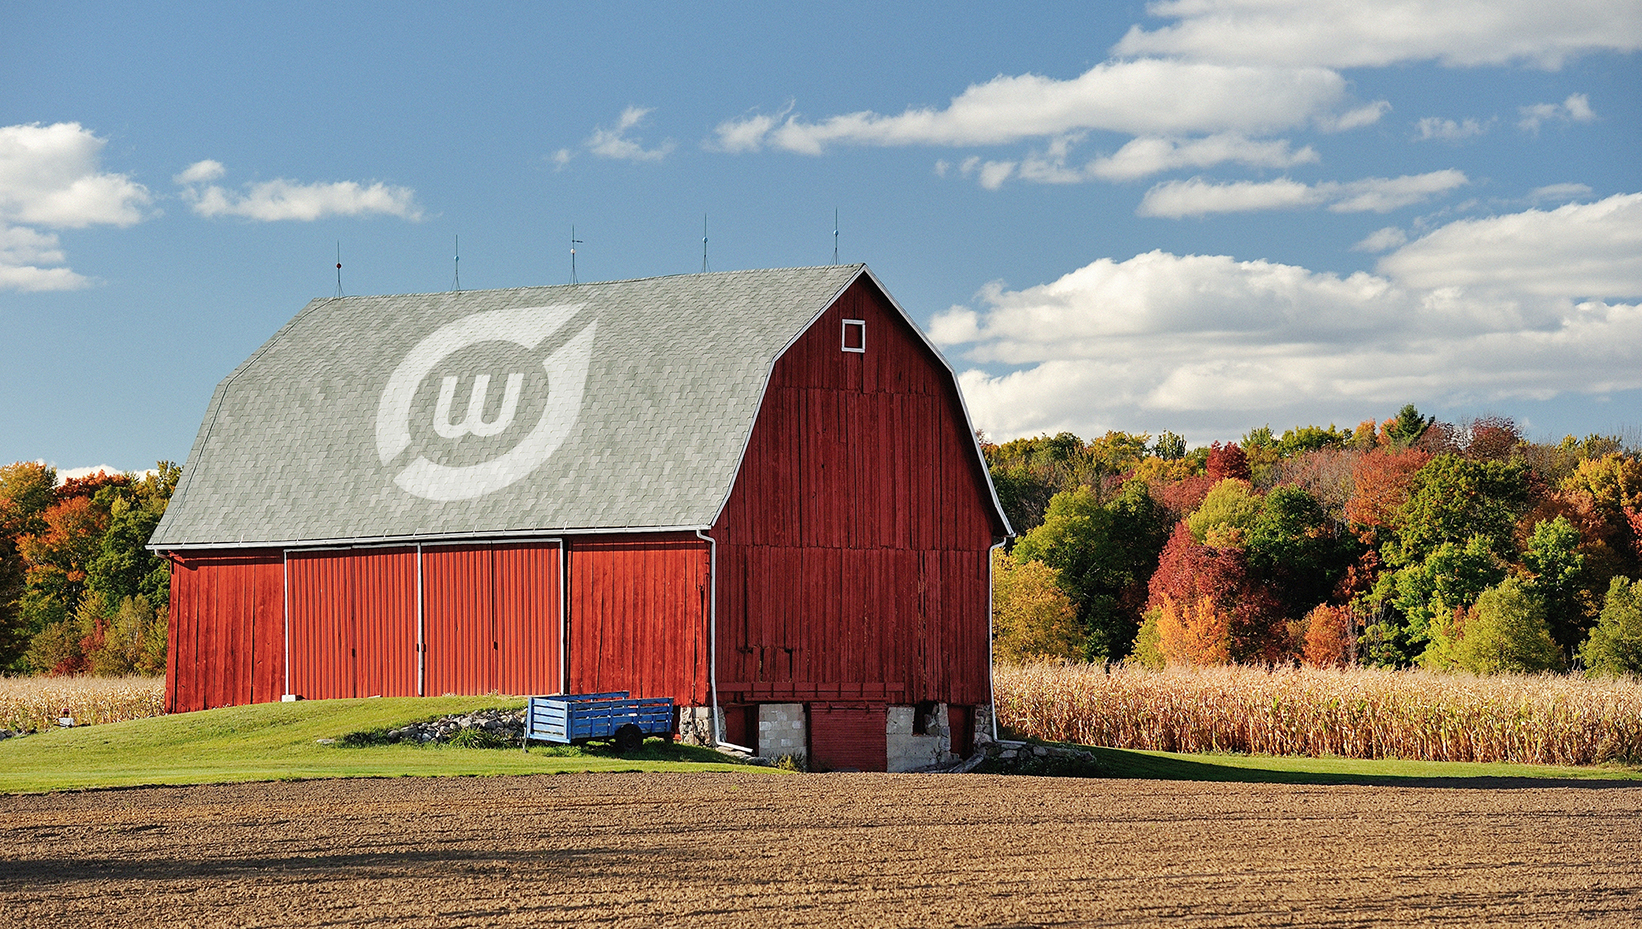 Destination Marketing: From Barn Roofs to Smartphones